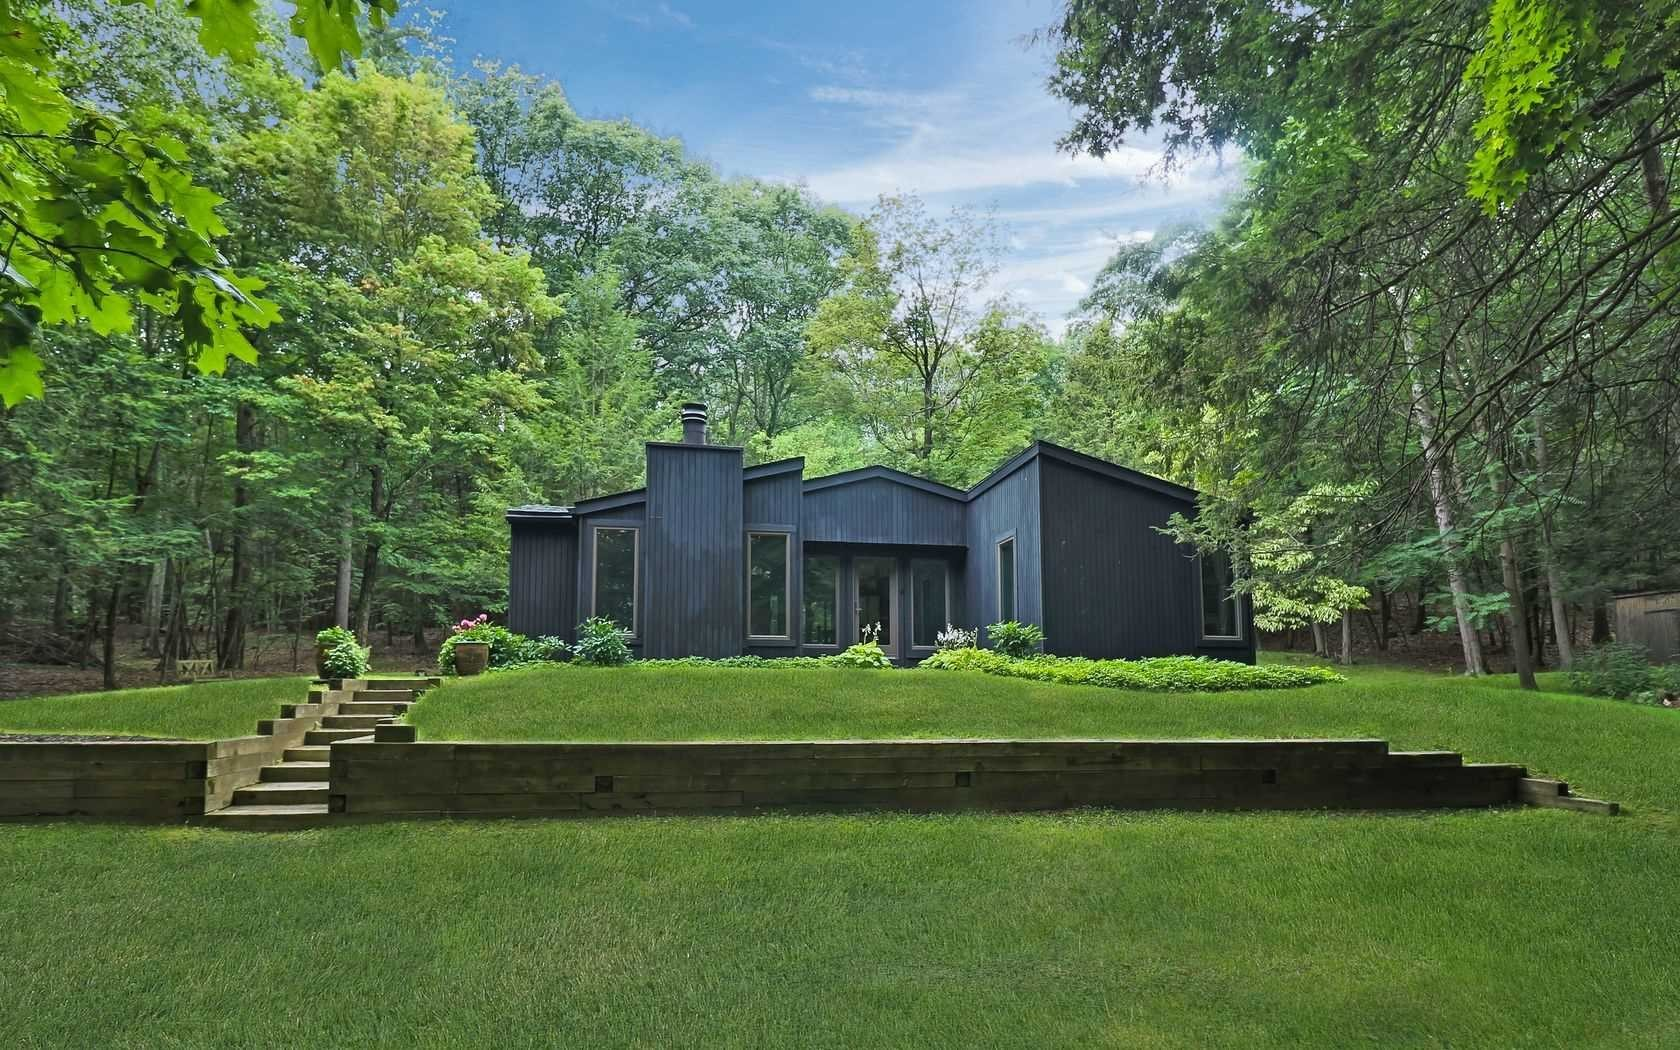 Single Family Home for Sale at 199 CREAMERY Road 199 CREAMERY Road Stanfordville, New York 12581 United States